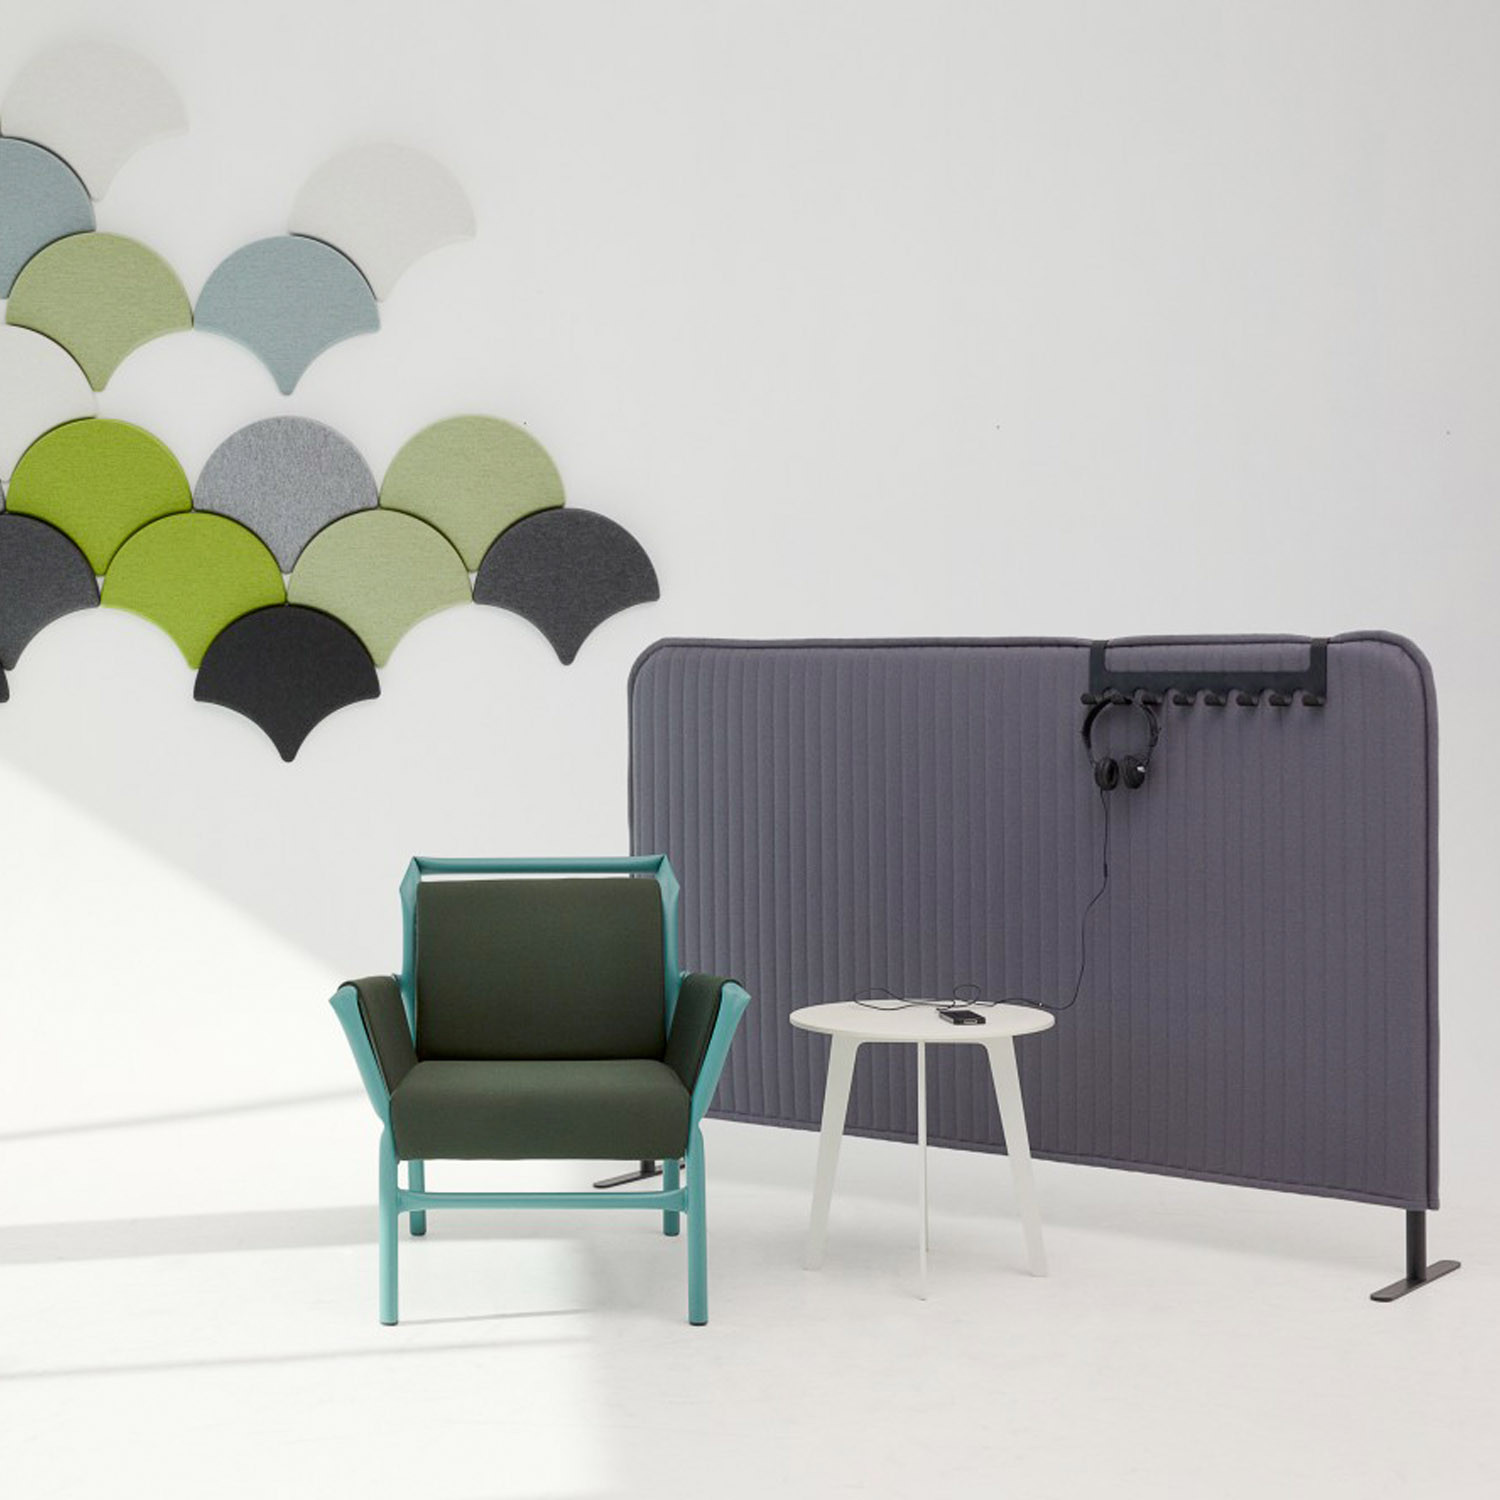 Koja Element Room Divider A50 by Bla Station